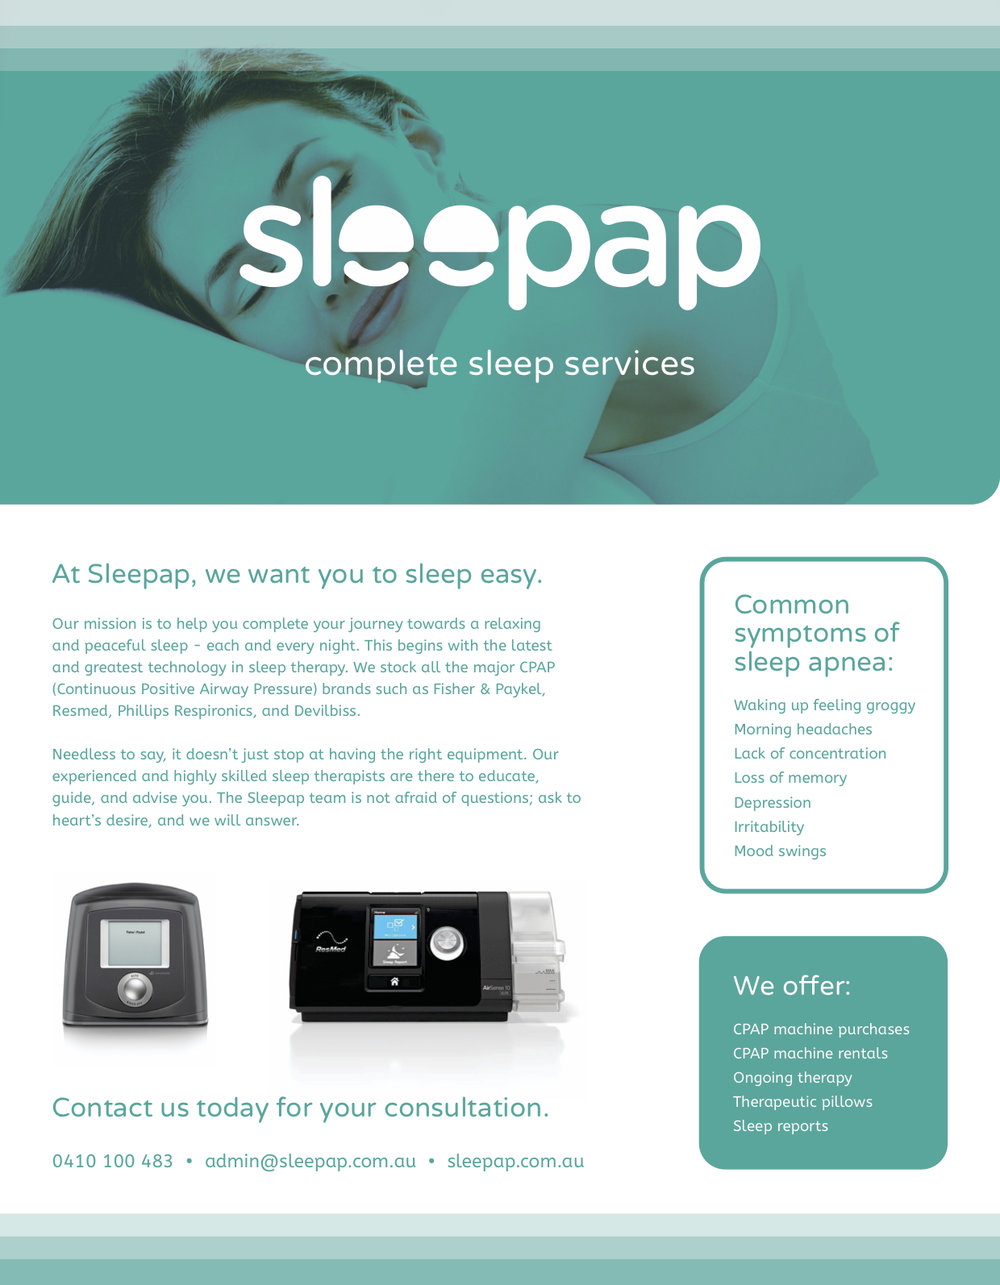 Click here to view the magazine ad I wrote for Sleepap.